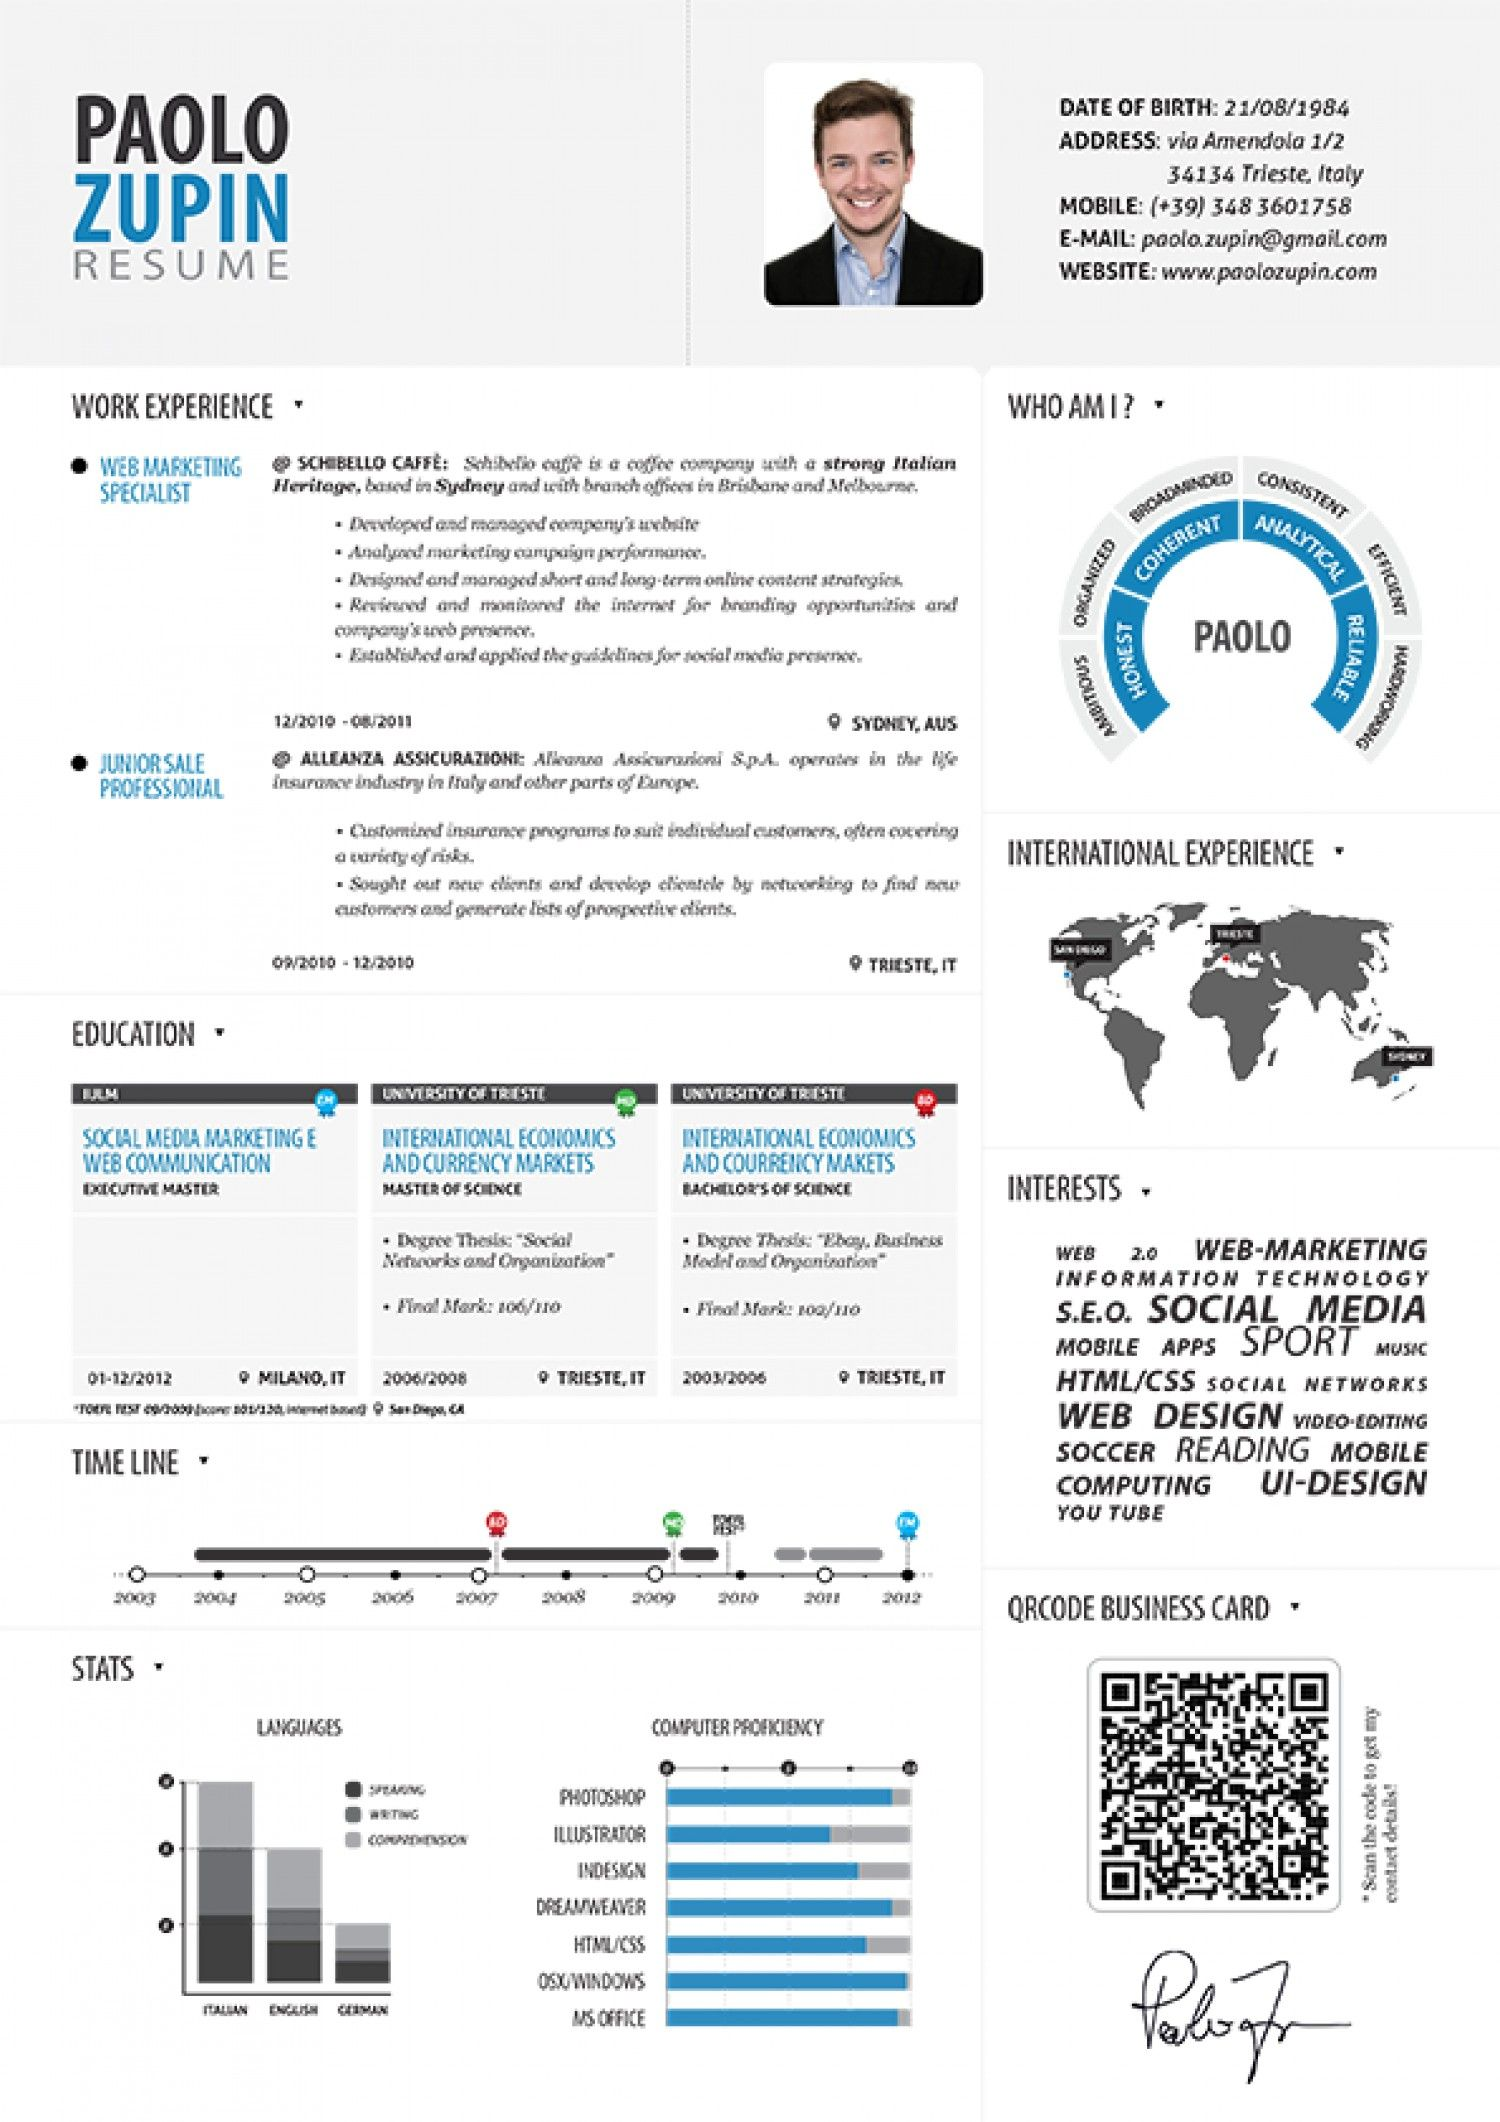 Opposenewapstandardsus  Gorgeous  Images About Infographic Resume On Pinterest  Infographic  With Extraordinary  Images About Infographic Resume On Pinterest  Infographic Resume Resume And Business Resume With Beauteous Mechanical Engineering Resume Objective Also Should You Use I In A Resume In Addition Costco Resume And Driver Resume Sample As Well As Resume Customer Service Objective Additionally Buy Resume Templates From Pinterestcom With Opposenewapstandardsus  Extraordinary  Images About Infographic Resume On Pinterest  Infographic  With Beauteous  Images About Infographic Resume On Pinterest  Infographic Resume Resume And Business Resume And Gorgeous Mechanical Engineering Resume Objective Also Should You Use I In A Resume In Addition Costco Resume From Pinterestcom